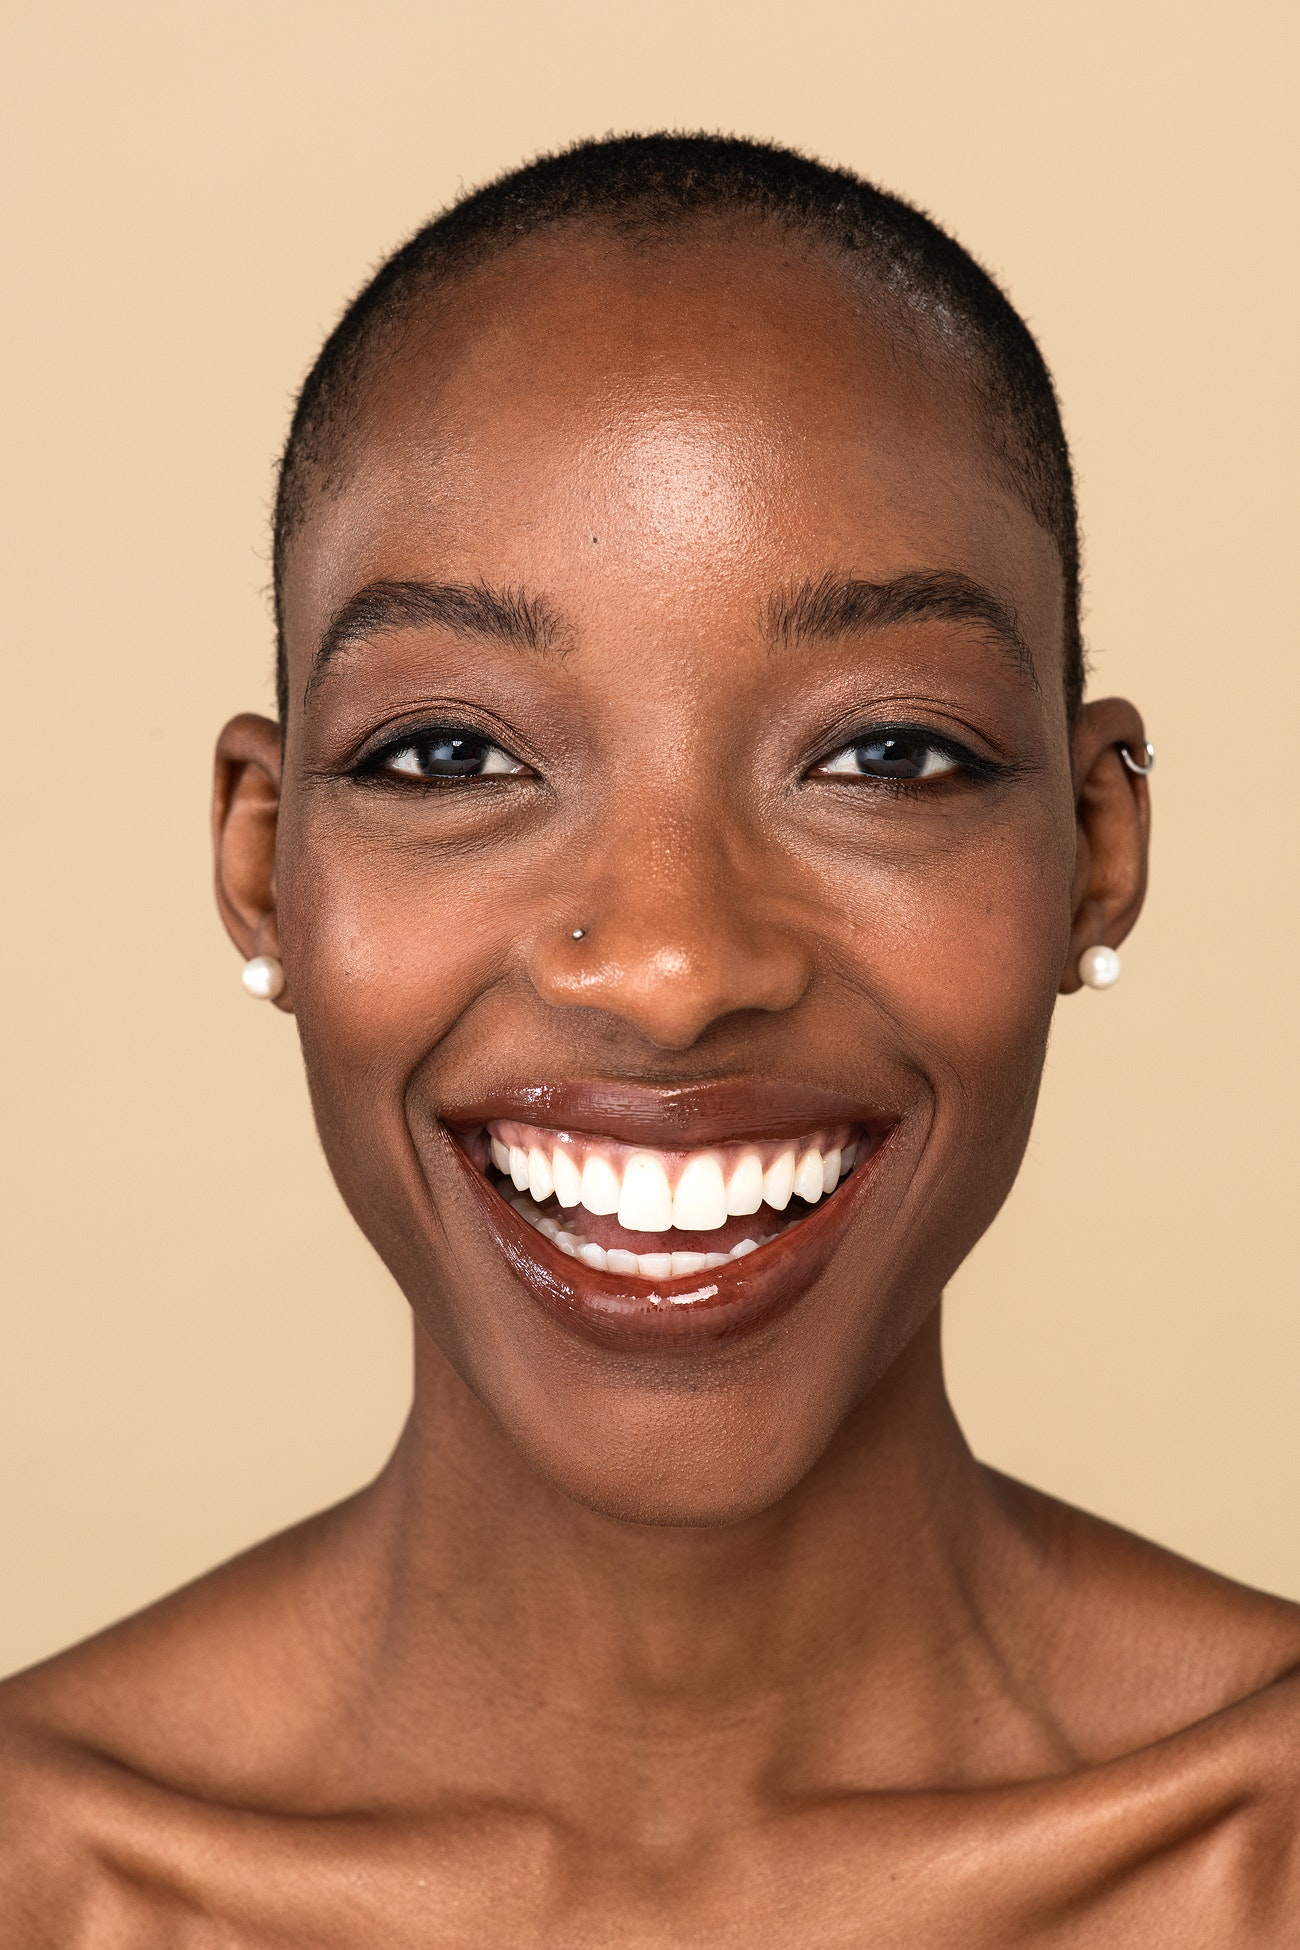 Happy nude black woman against a beige background